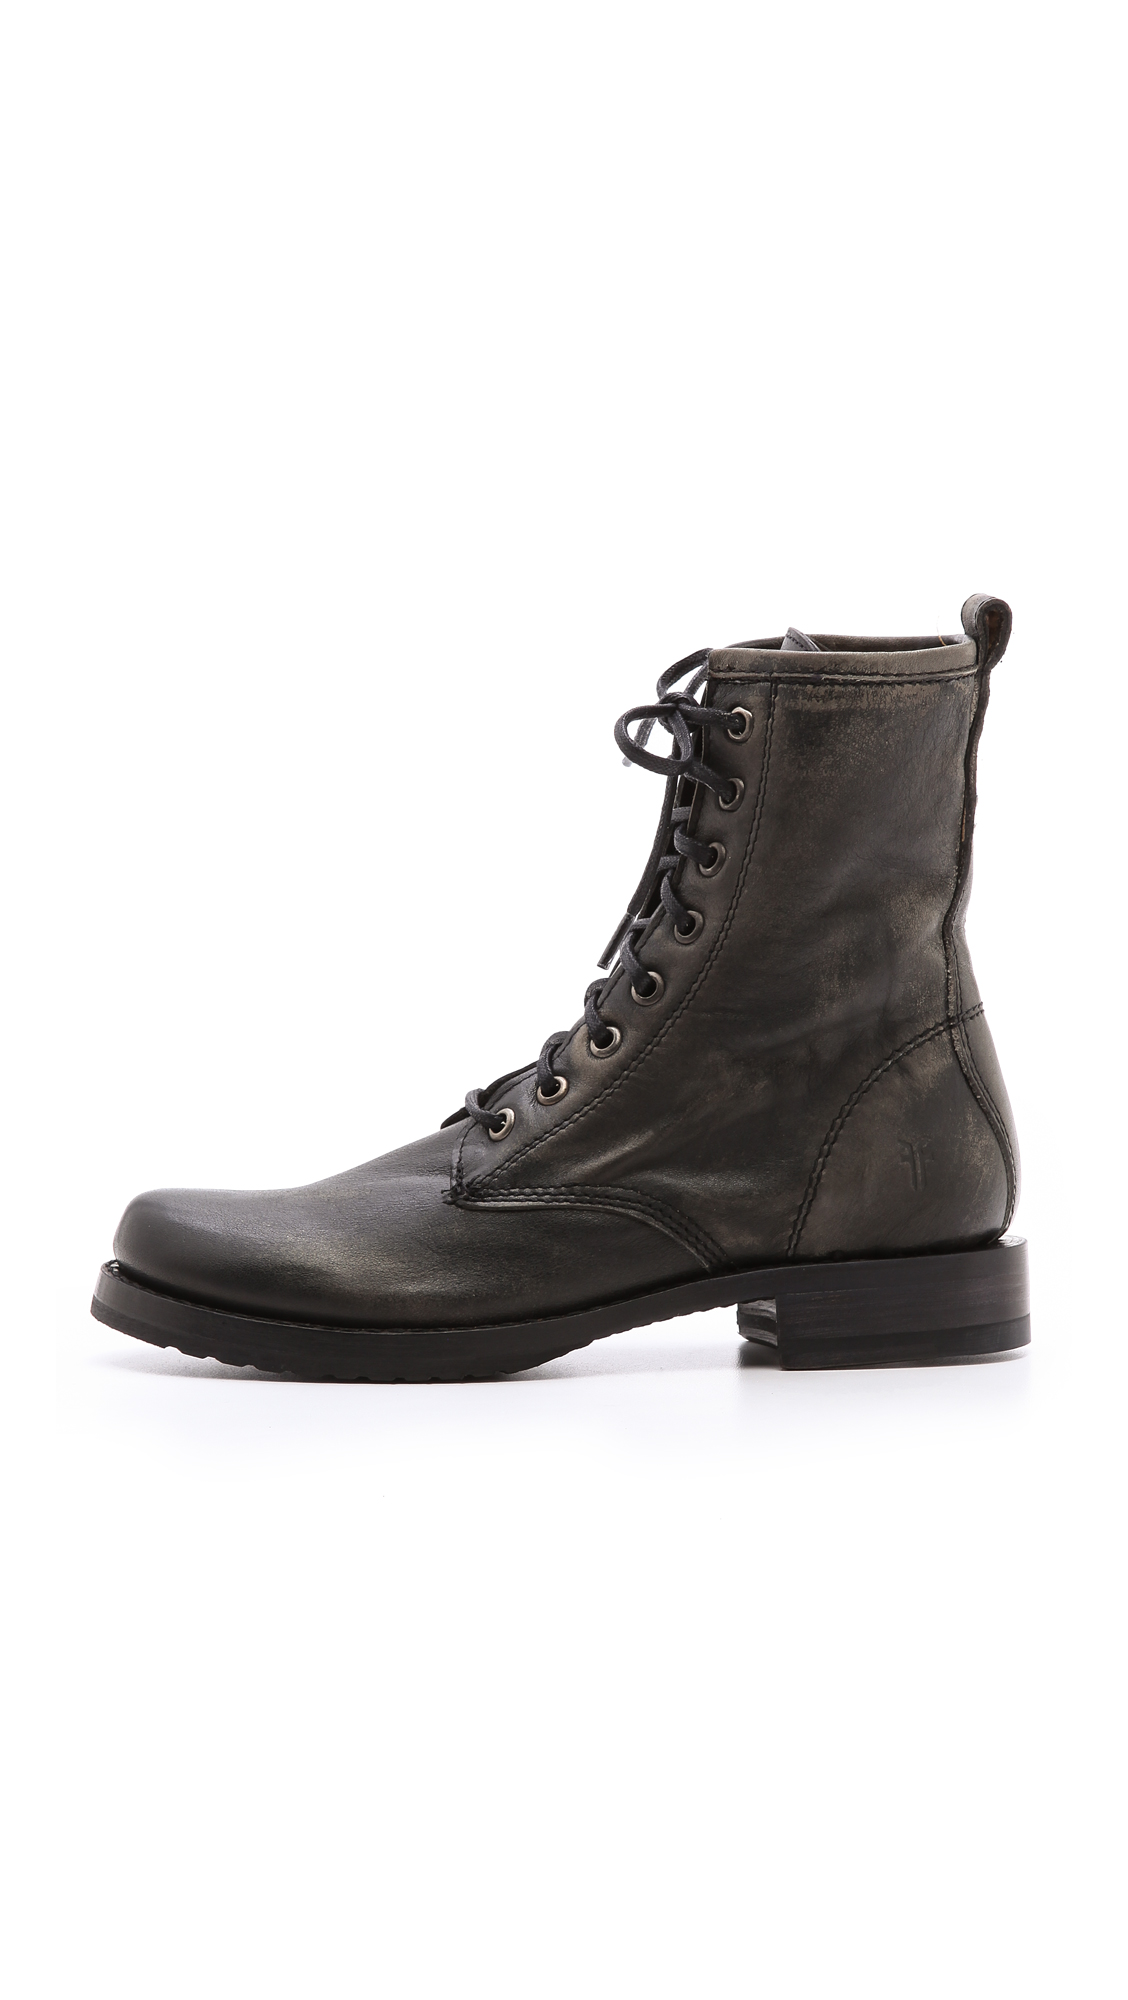 Lyst Frye Veronica Combat Boots In Black